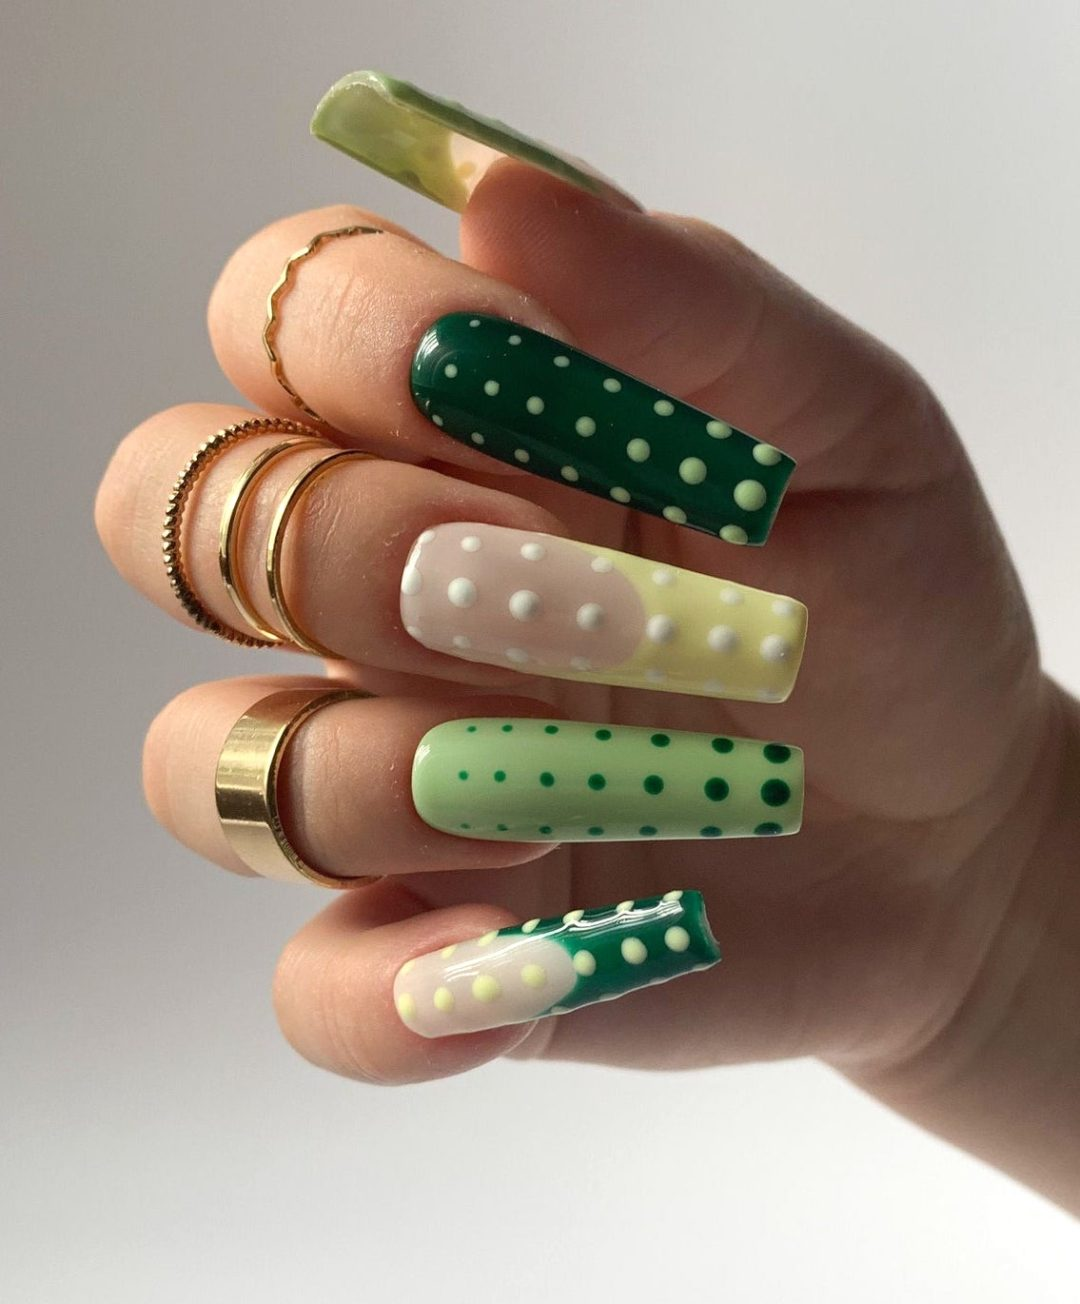 Light and dark polka dot nail designs with French tips